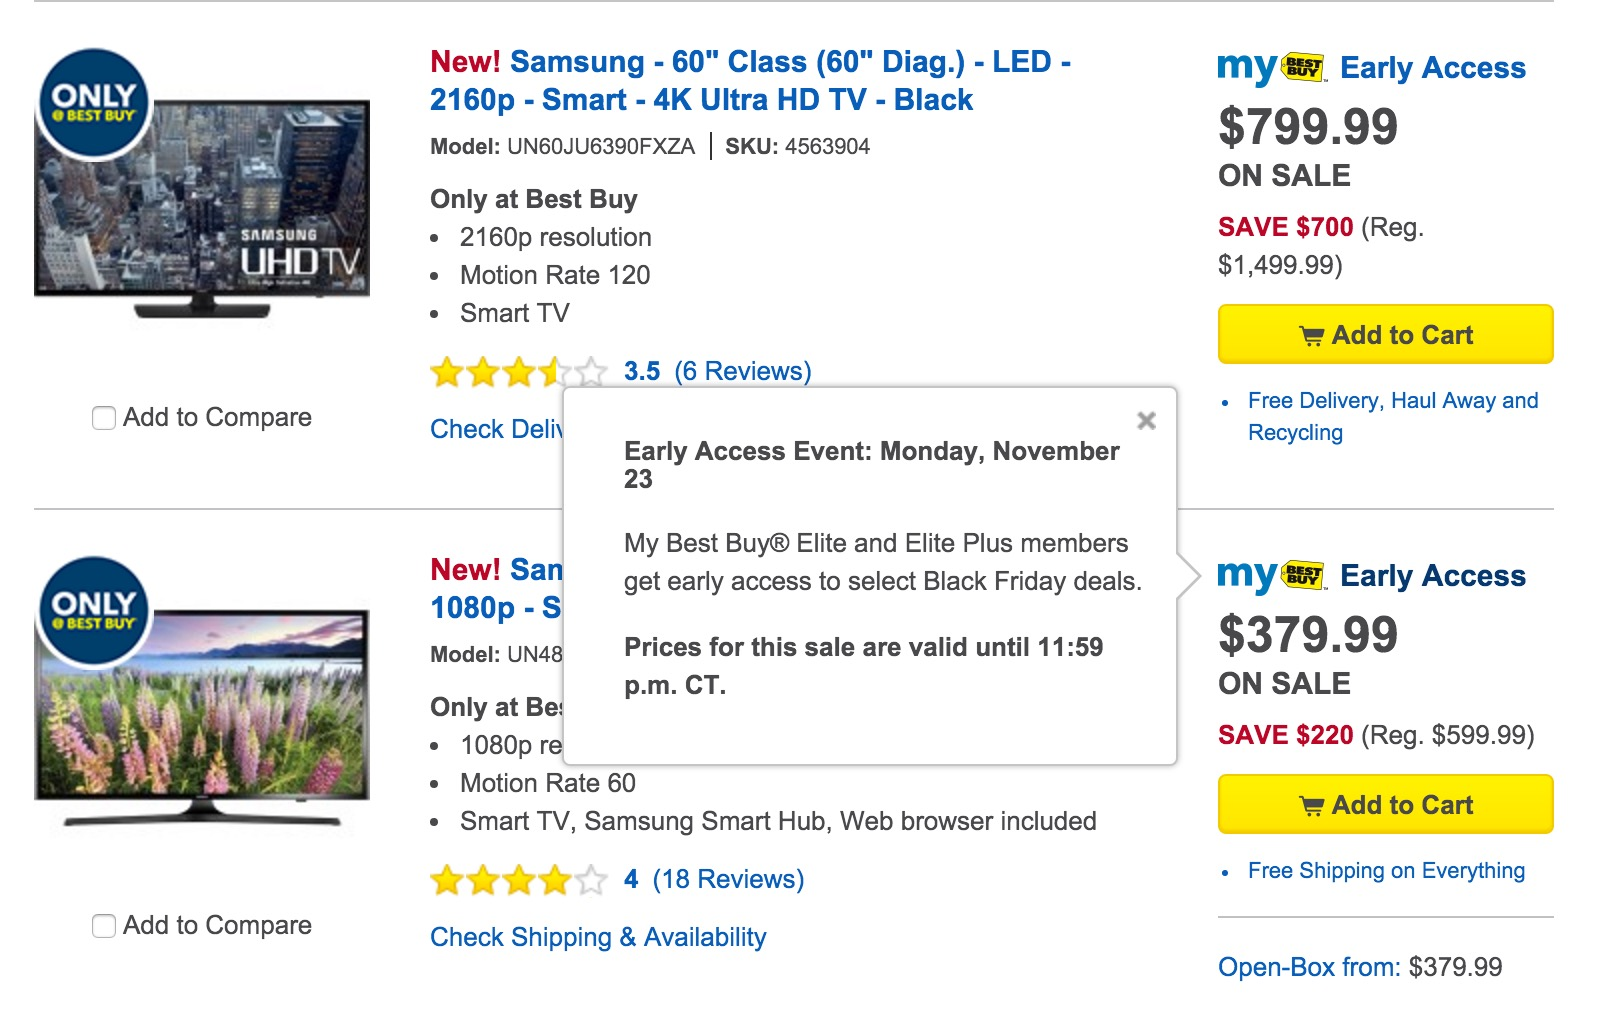 The Best Buy Black Friday 2015 ad is live for reward members online.